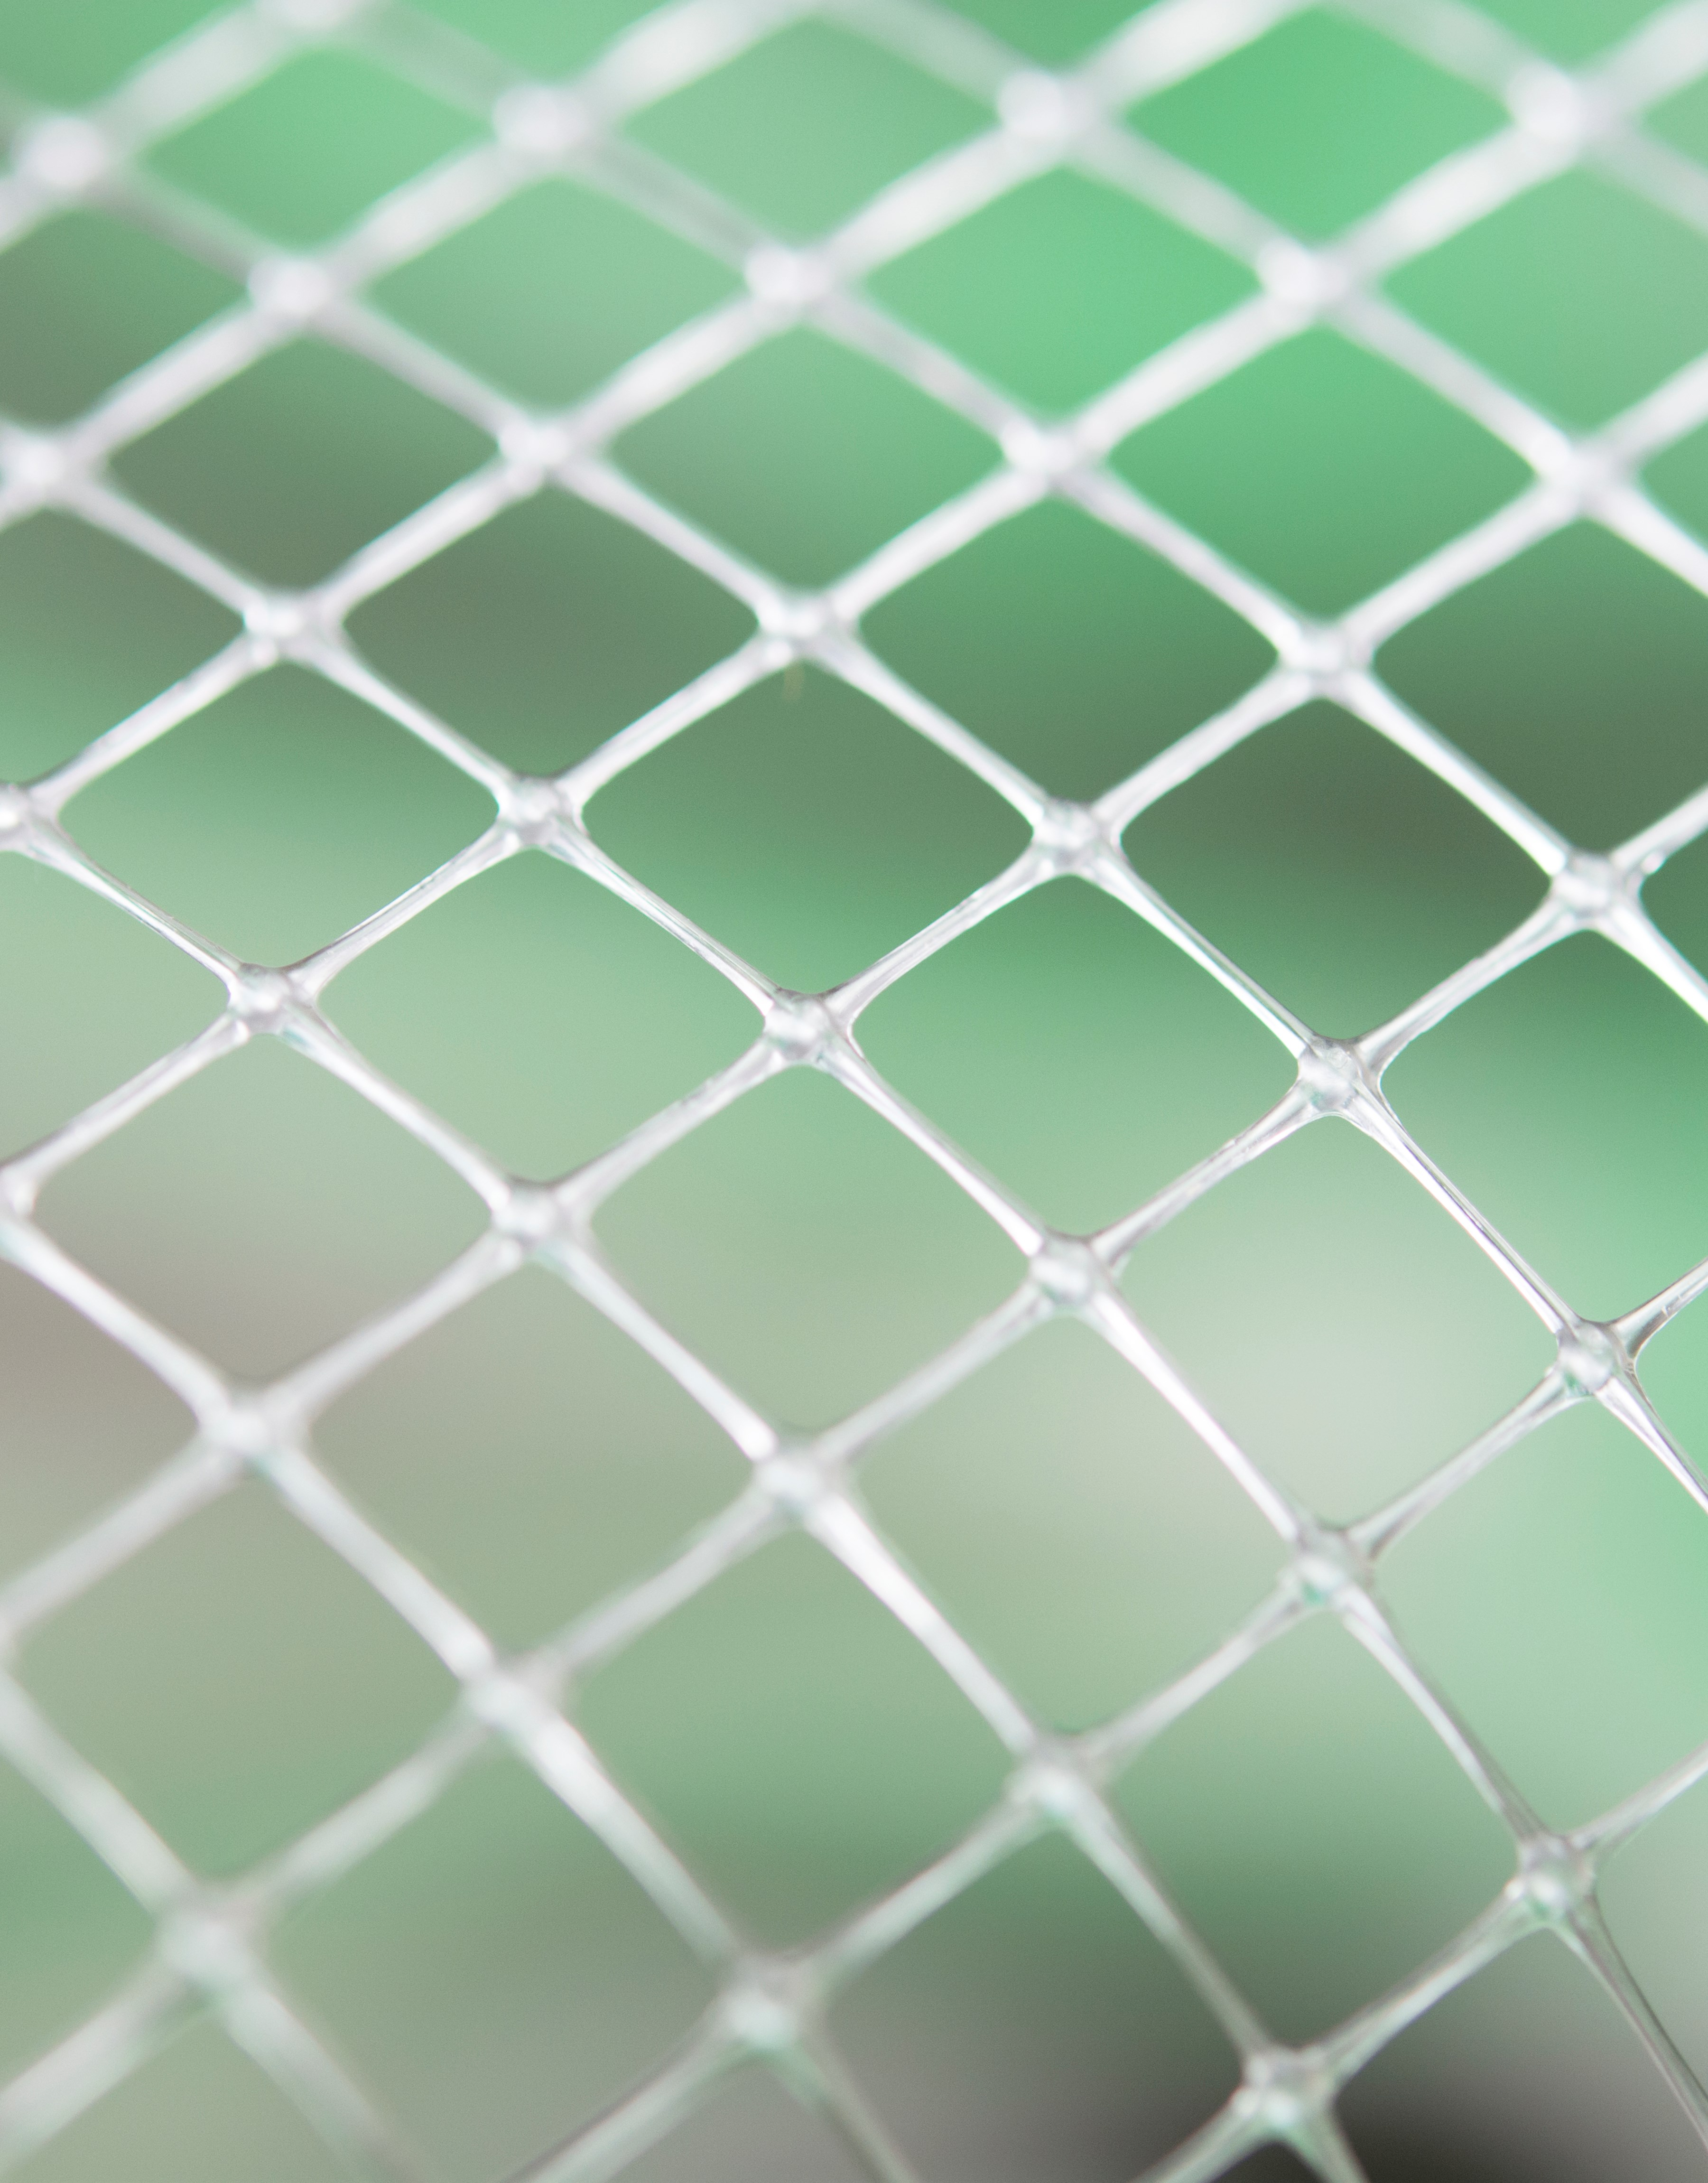 Oriented Netting